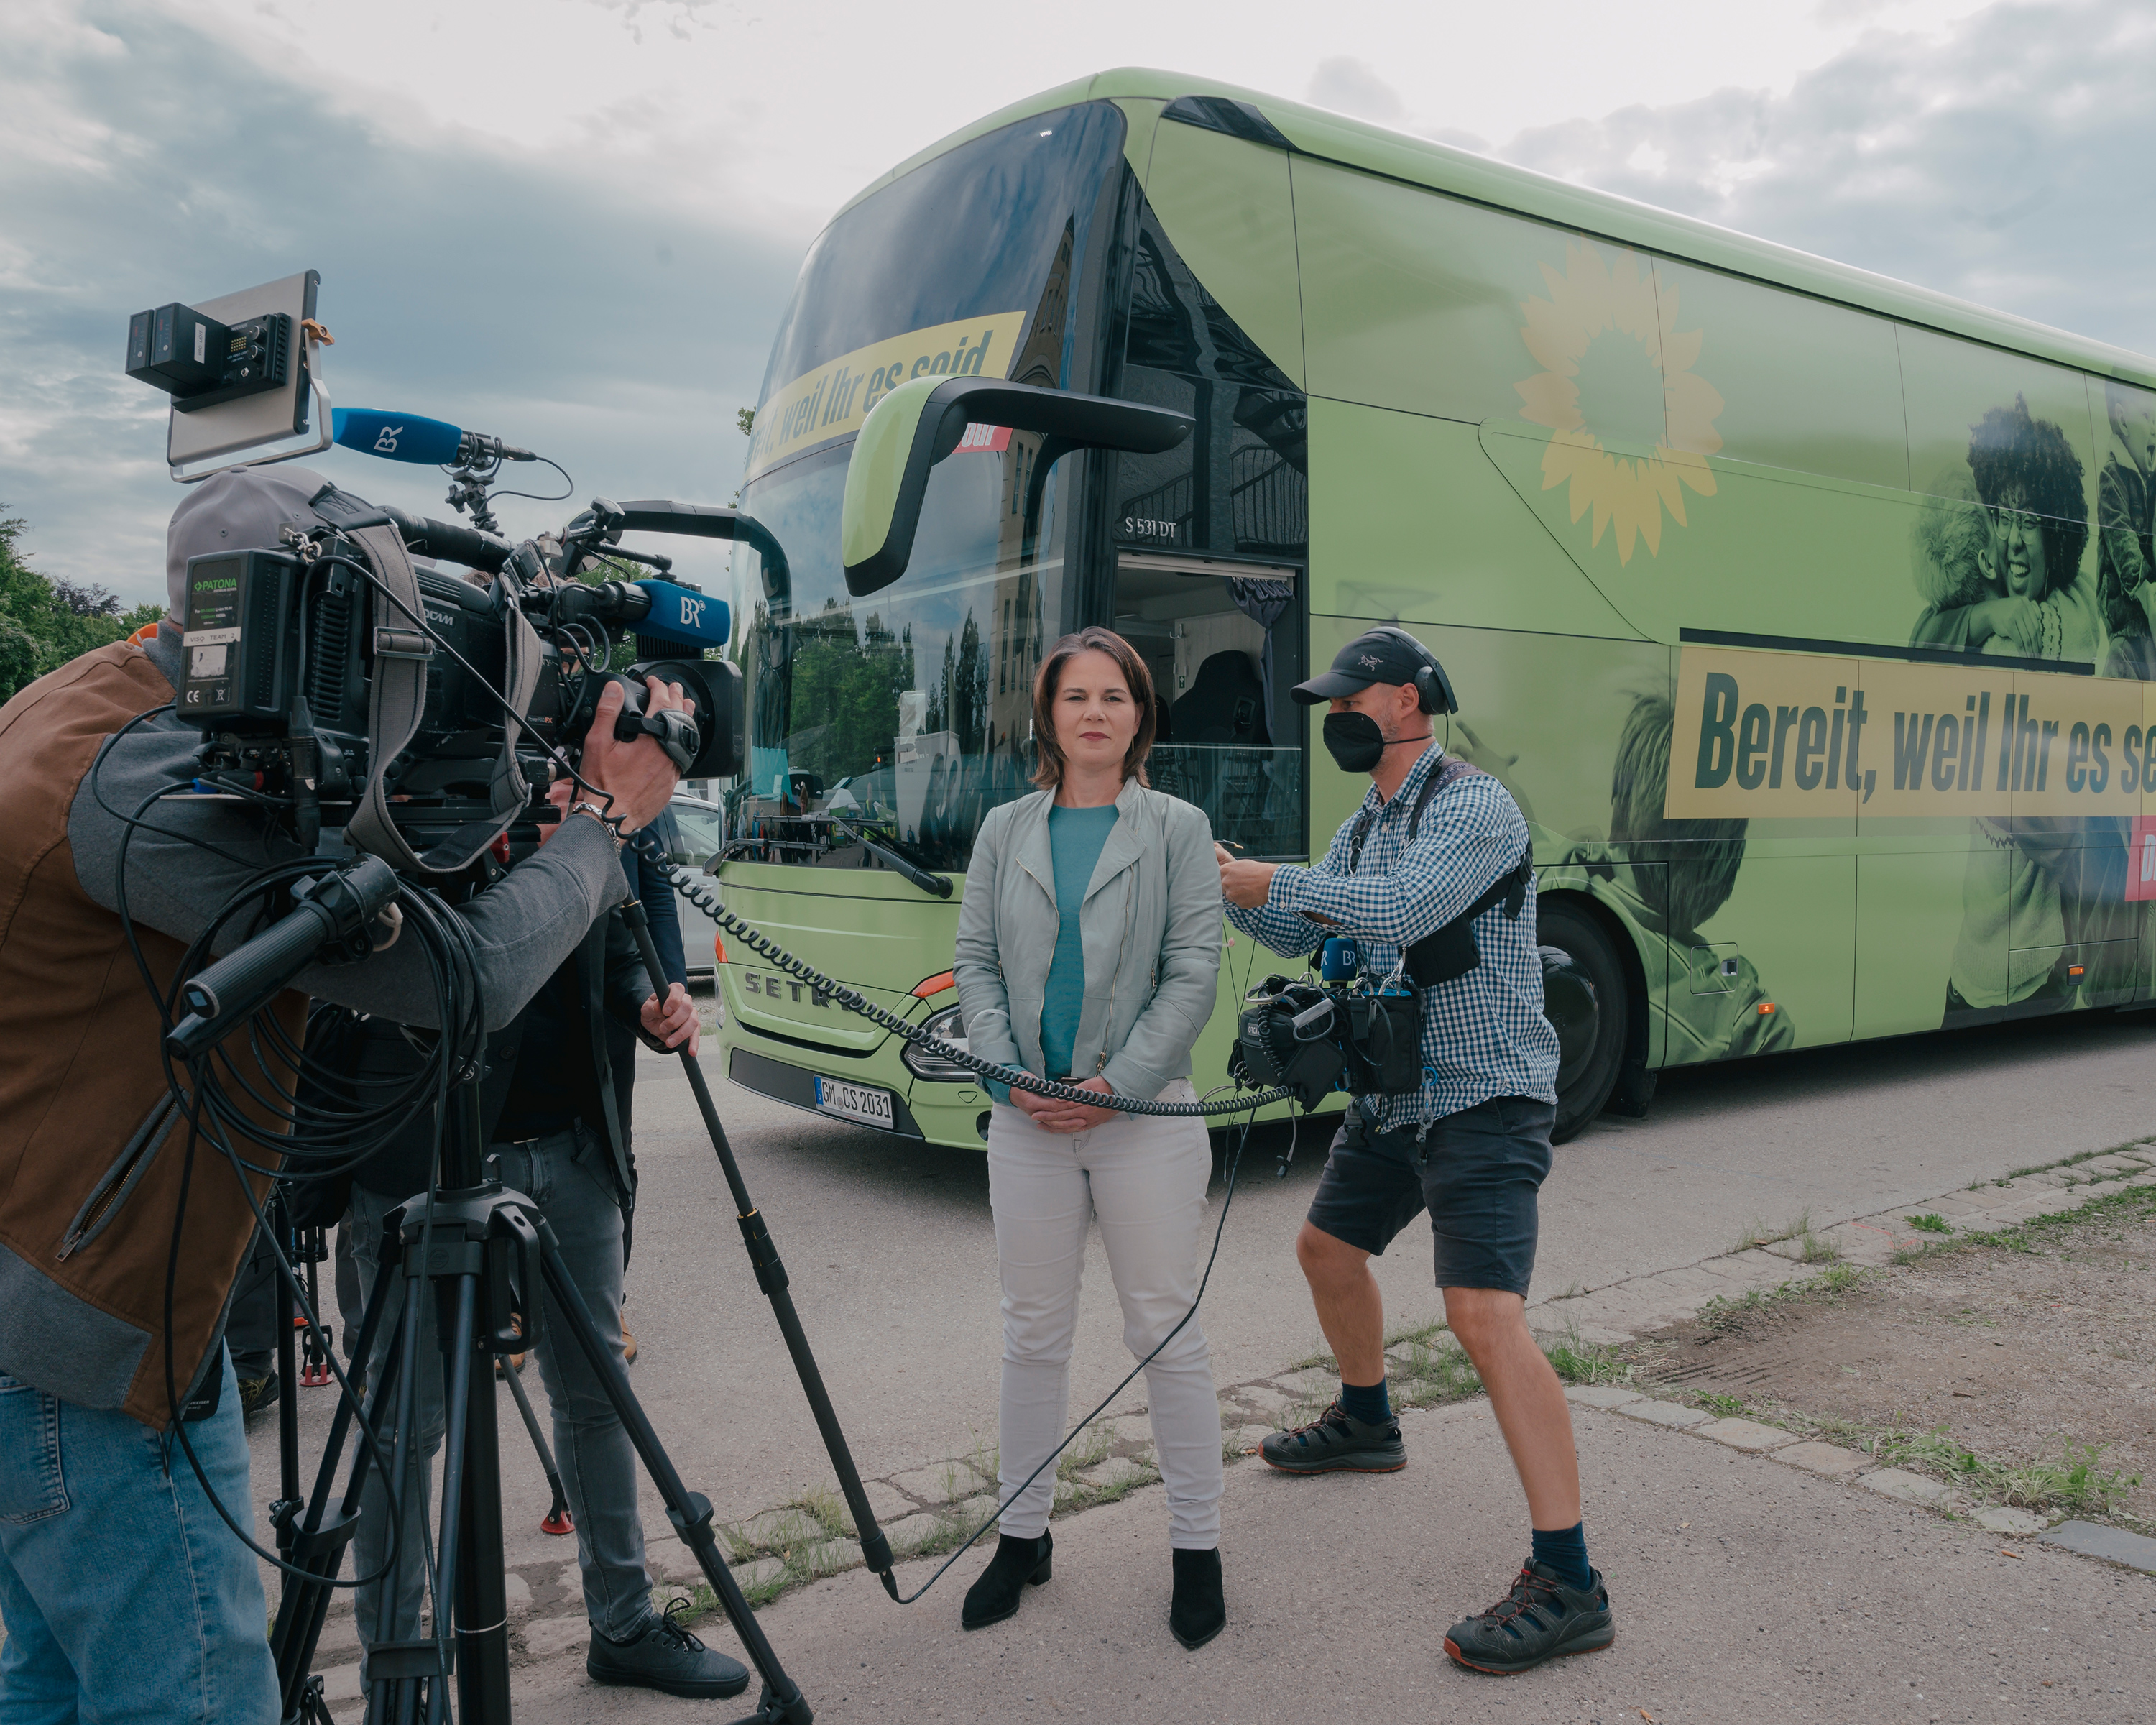 Annalena Baerbock of Alliance 90/The Greens (Bündniss 90/Die Grünen) gives interviews to German Media at a election campaign event in Dachau, Germany, on Aug. 17.